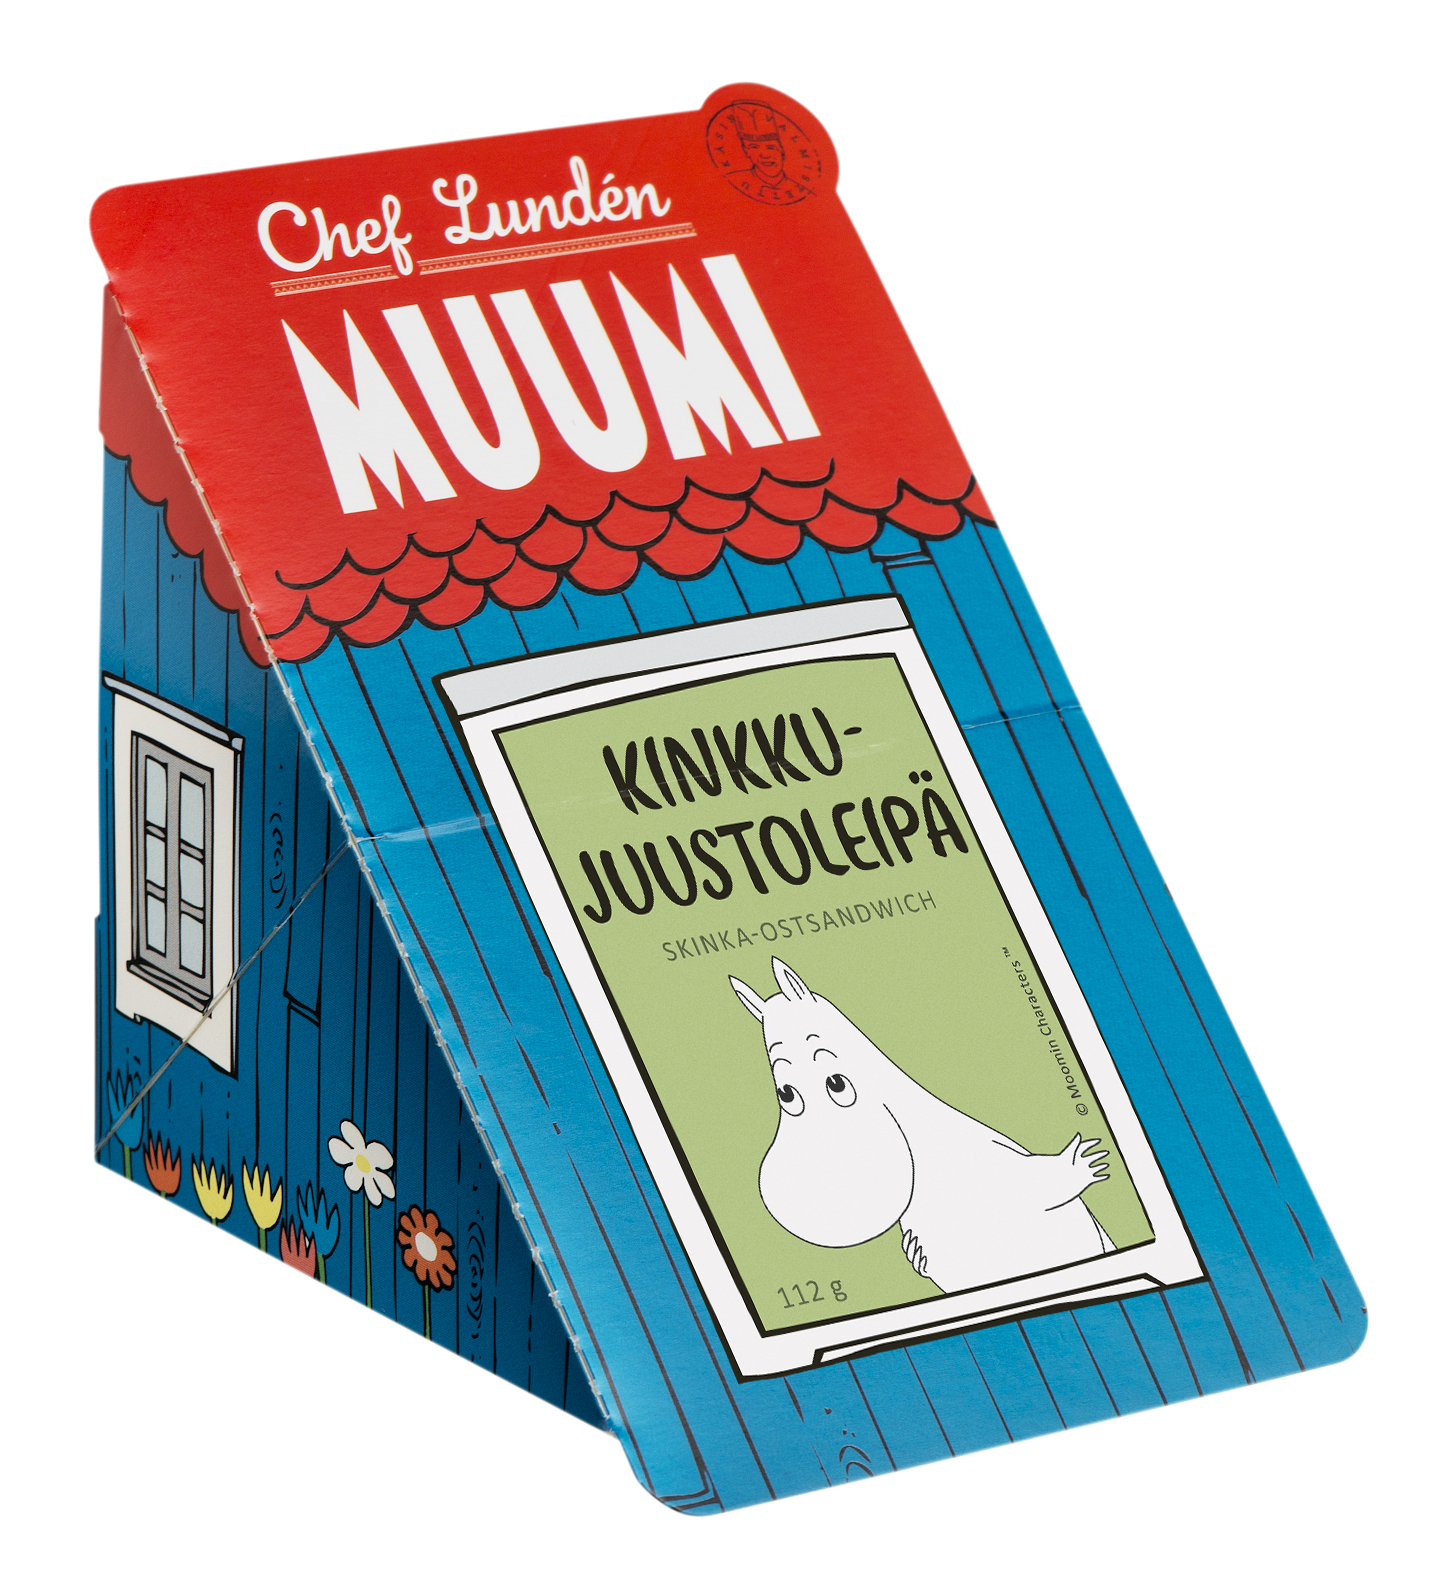 Chef Lundén Muumi Ham and Cheese Sandwich 74 g